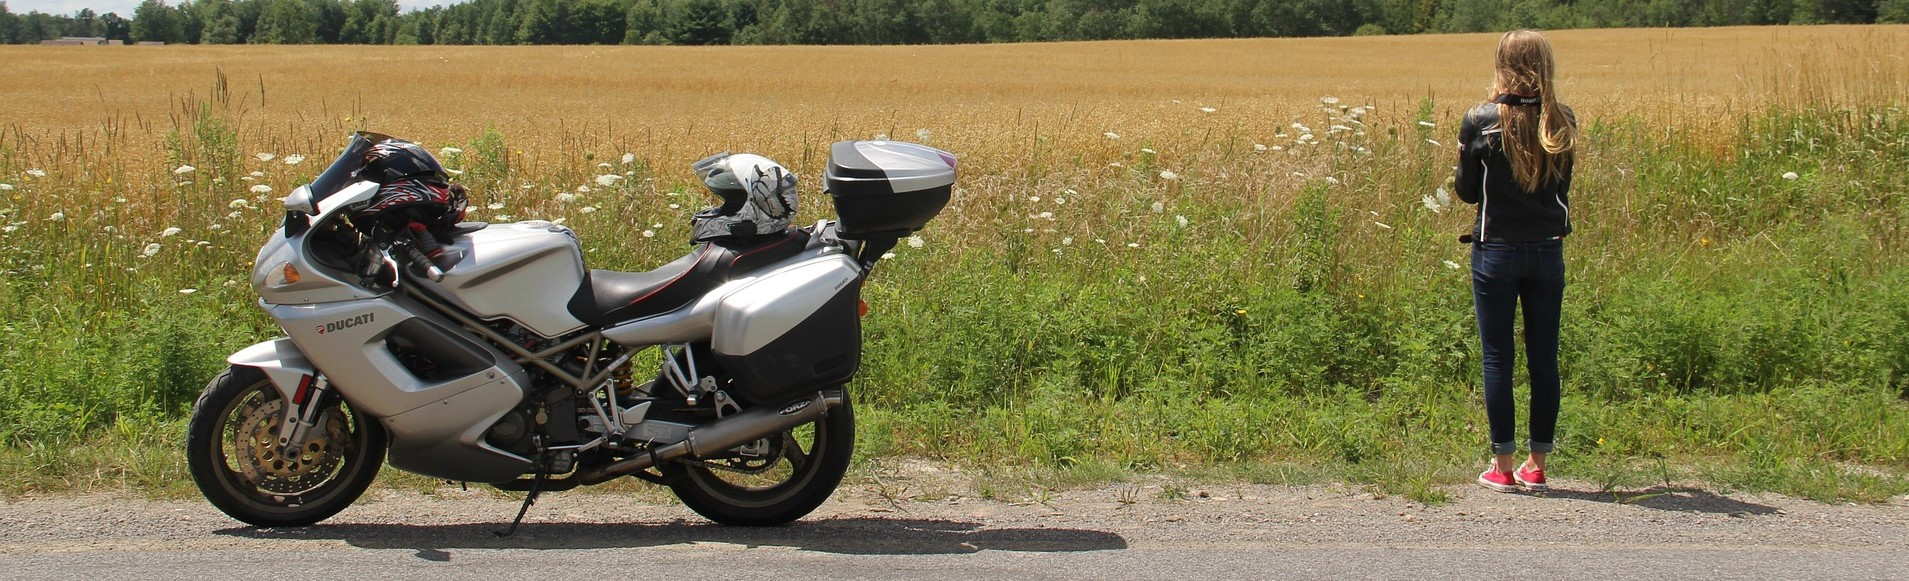 Ducati along the Road | Breast Cancer Car Donations